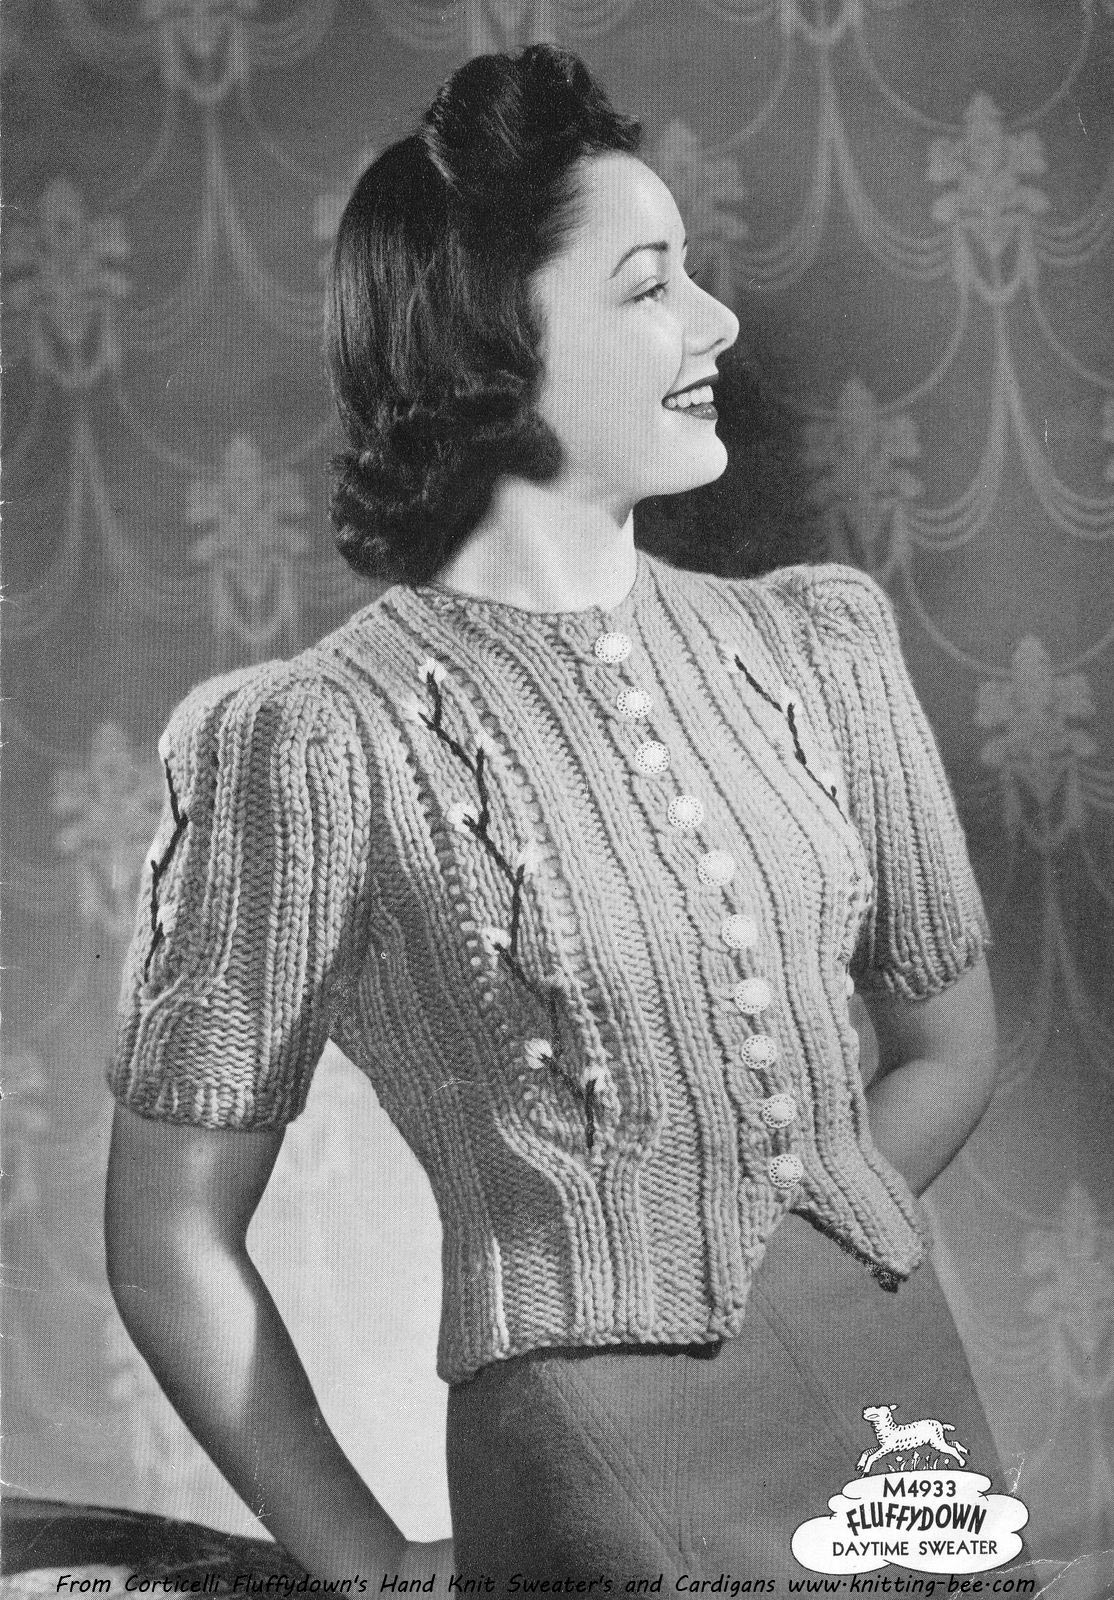 1940 Knitting Patterns Free : The Vintage Pattern Files: 1940s Knitting - Daytime Sweater